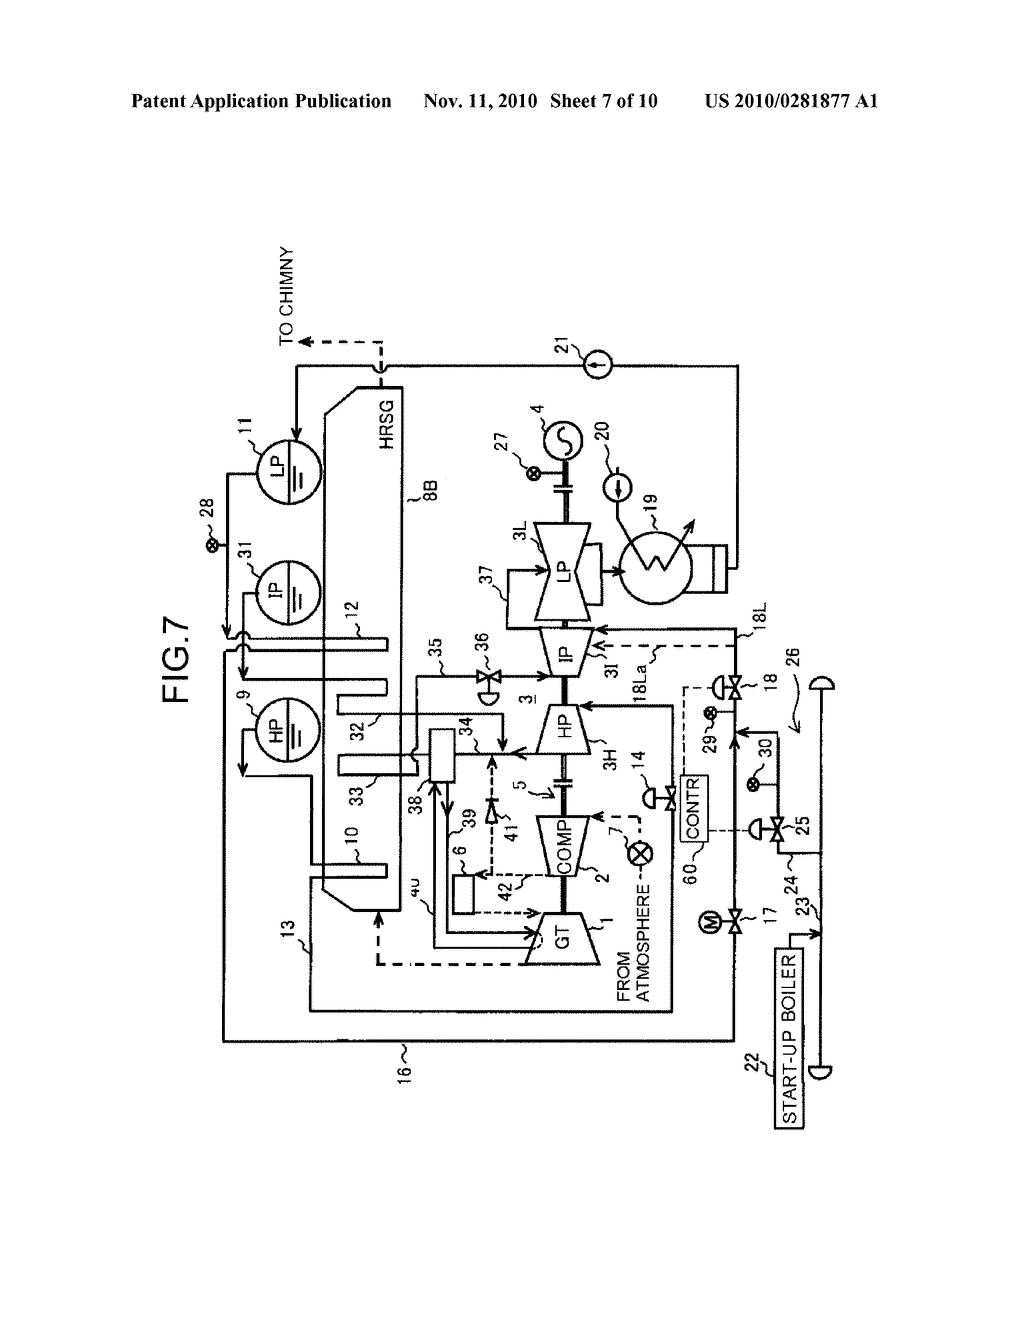 hight resolution of single shaft combined cycle power plant start up method an single shaft combined cycle power plant diagram schematic and image 08